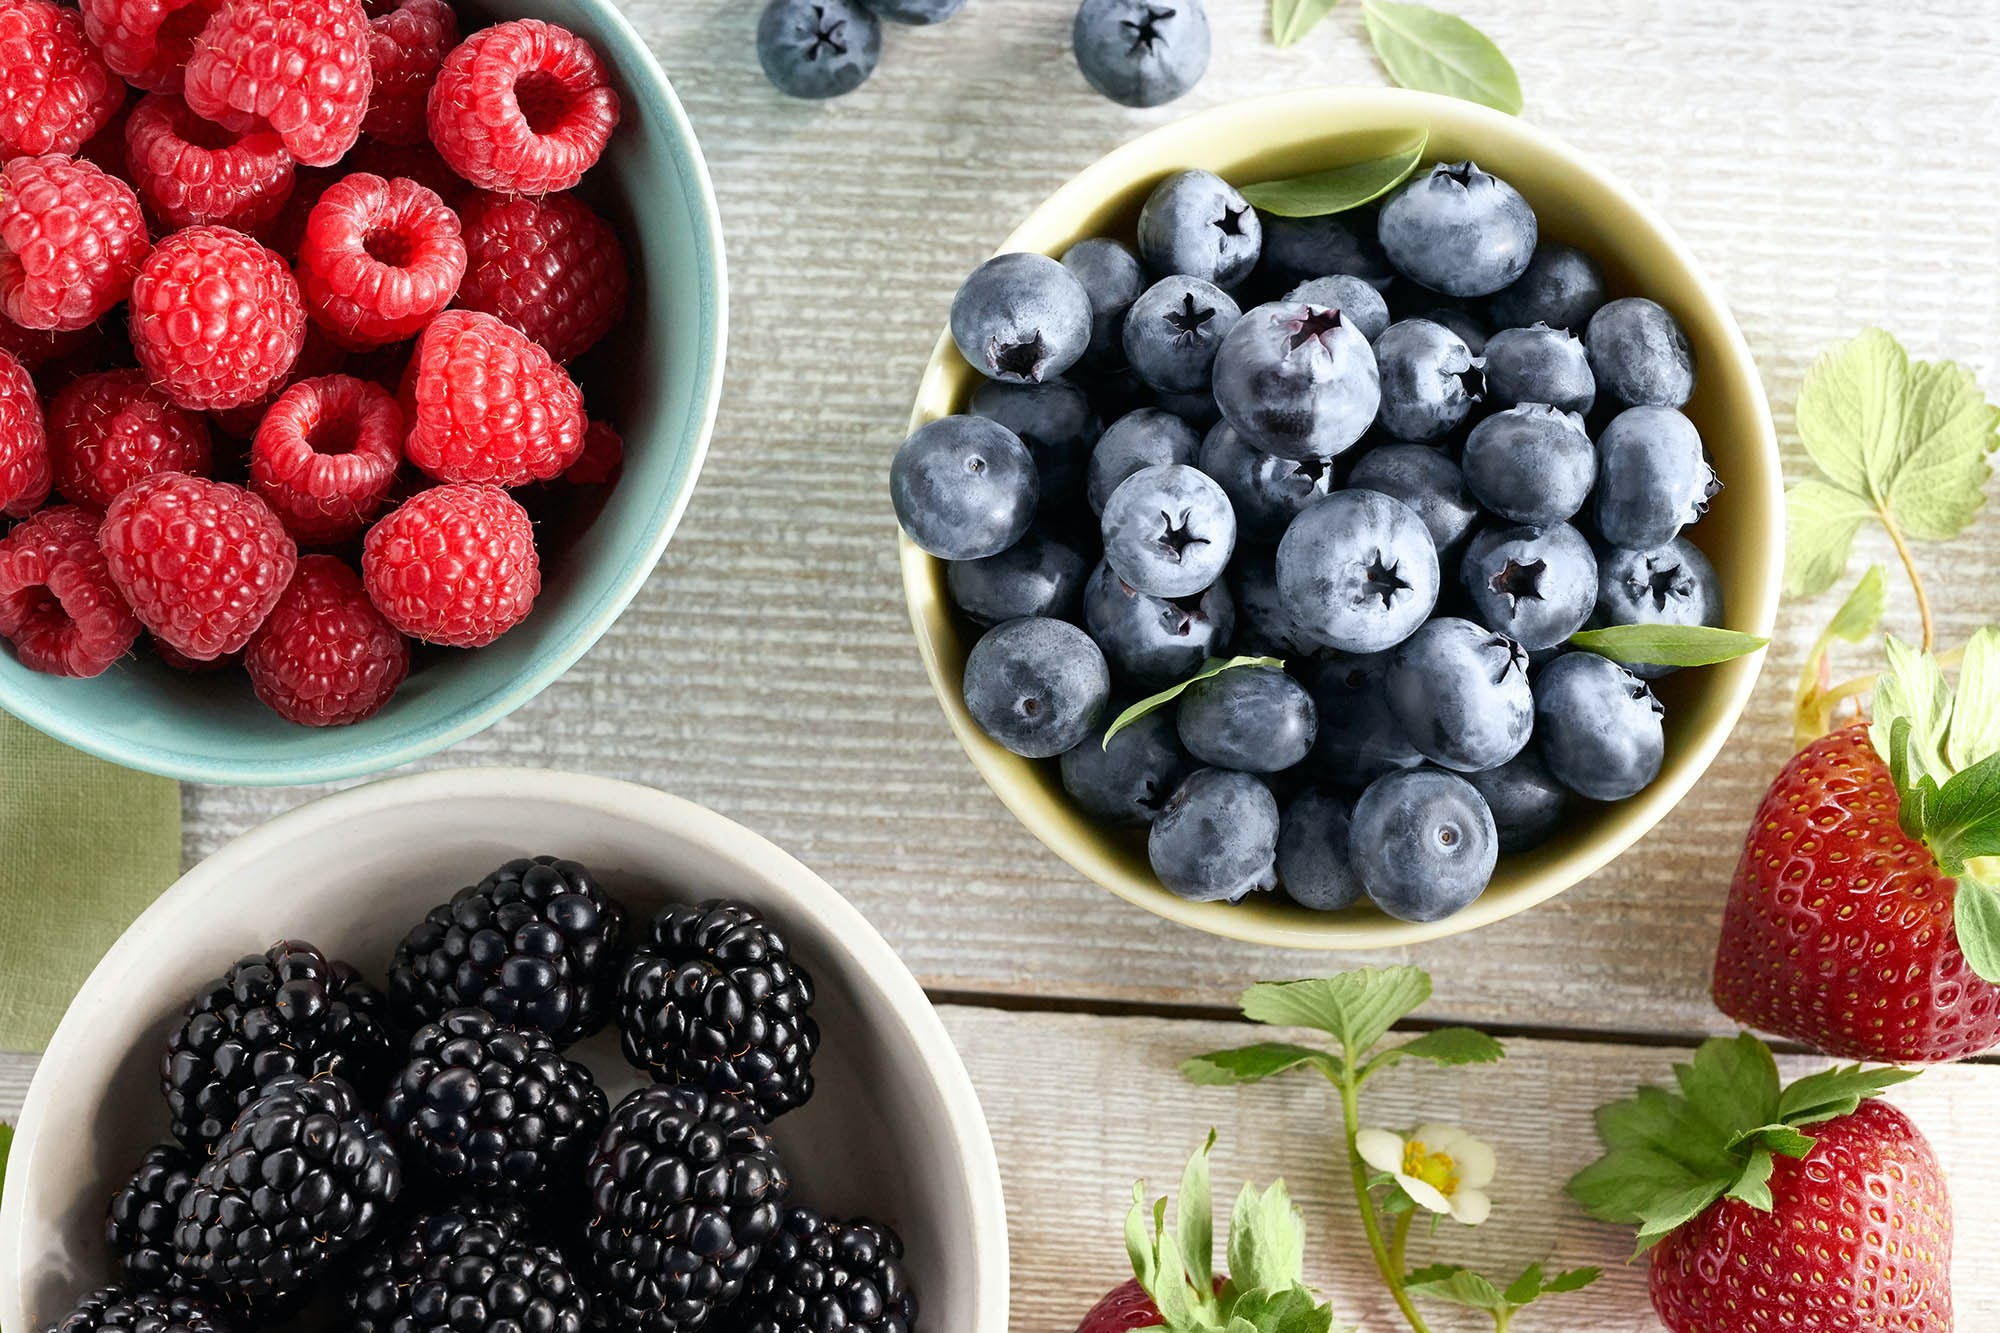 Berry Diet for Diabetes | Driscoll's